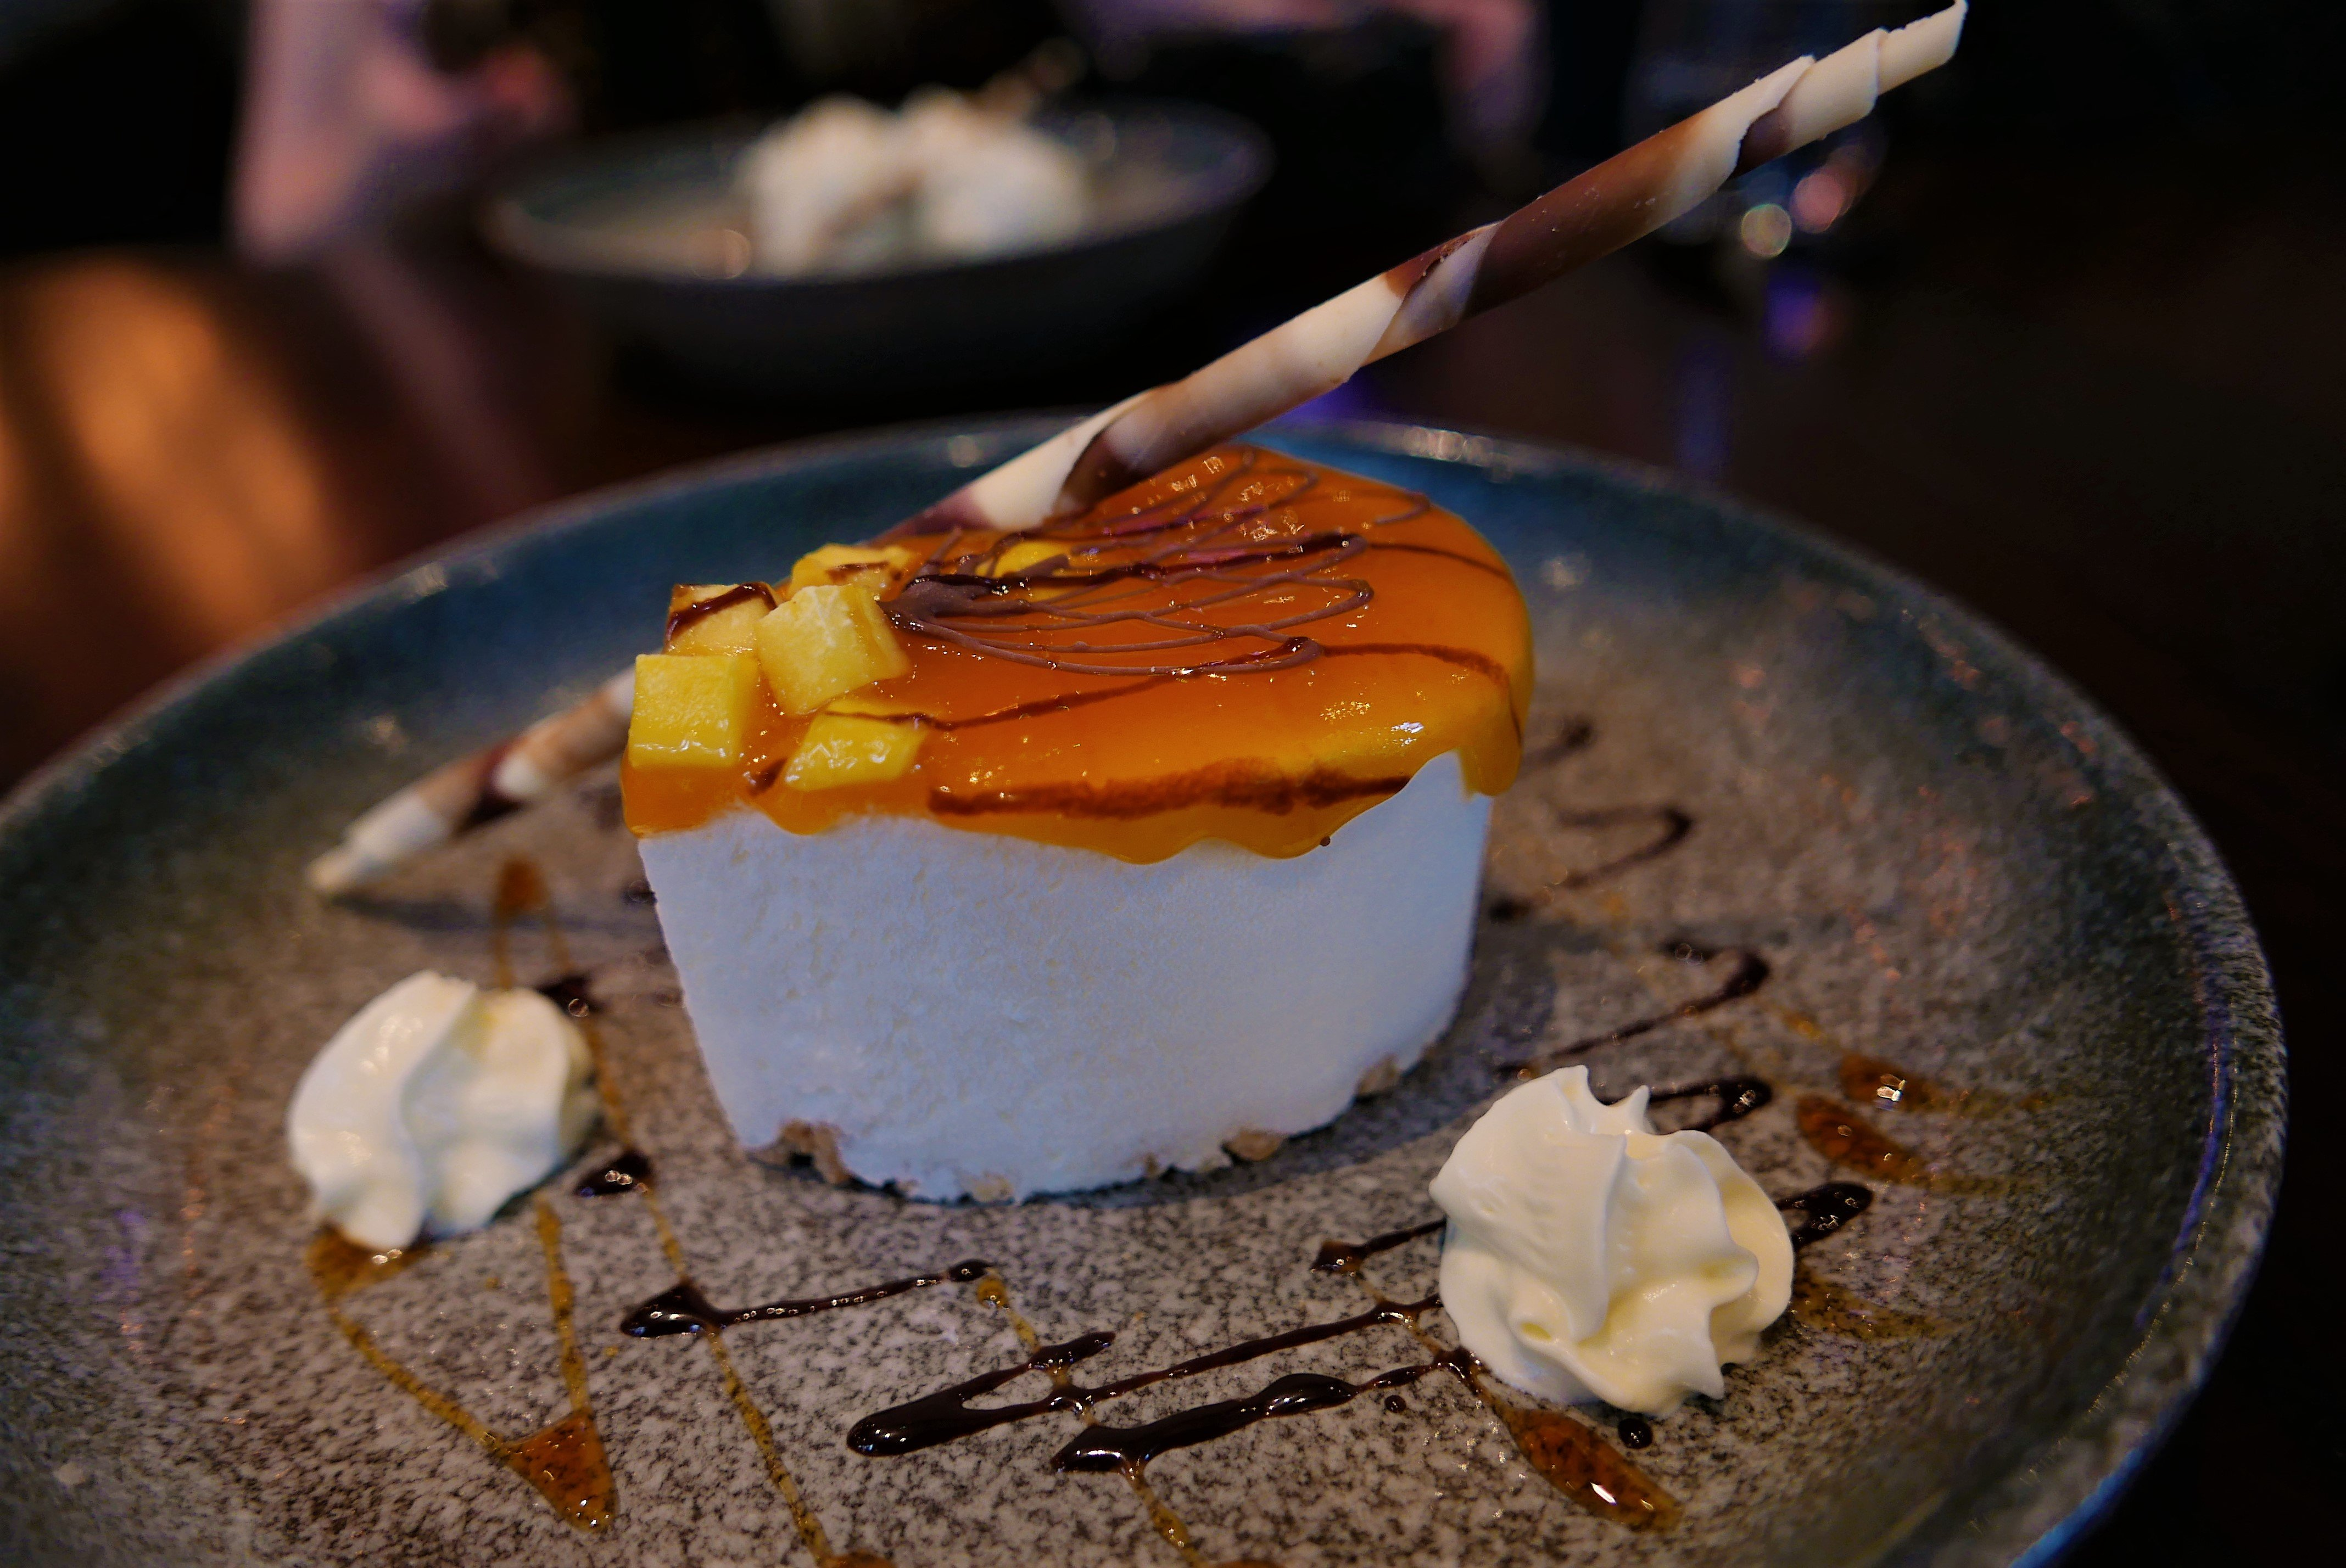 Mango & Passionfruit Cheesecake at Siamais Birmingham